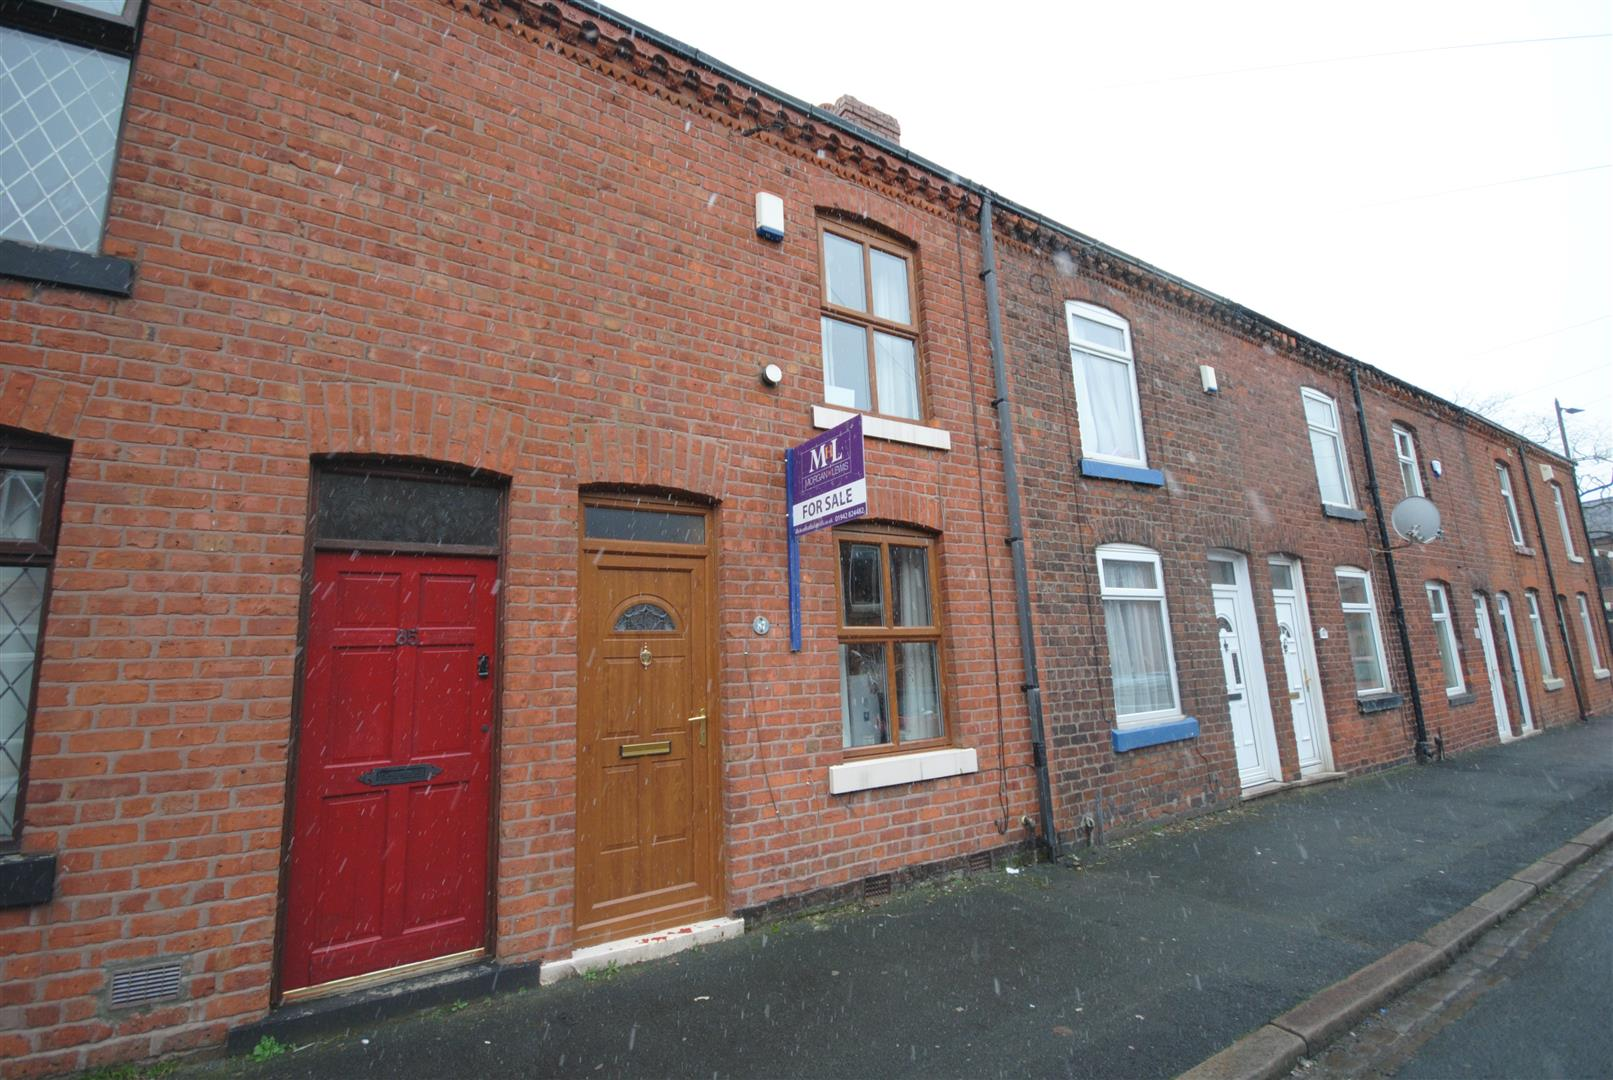 2 Bedrooms Terraced House for sale in Spring Street, Wigan